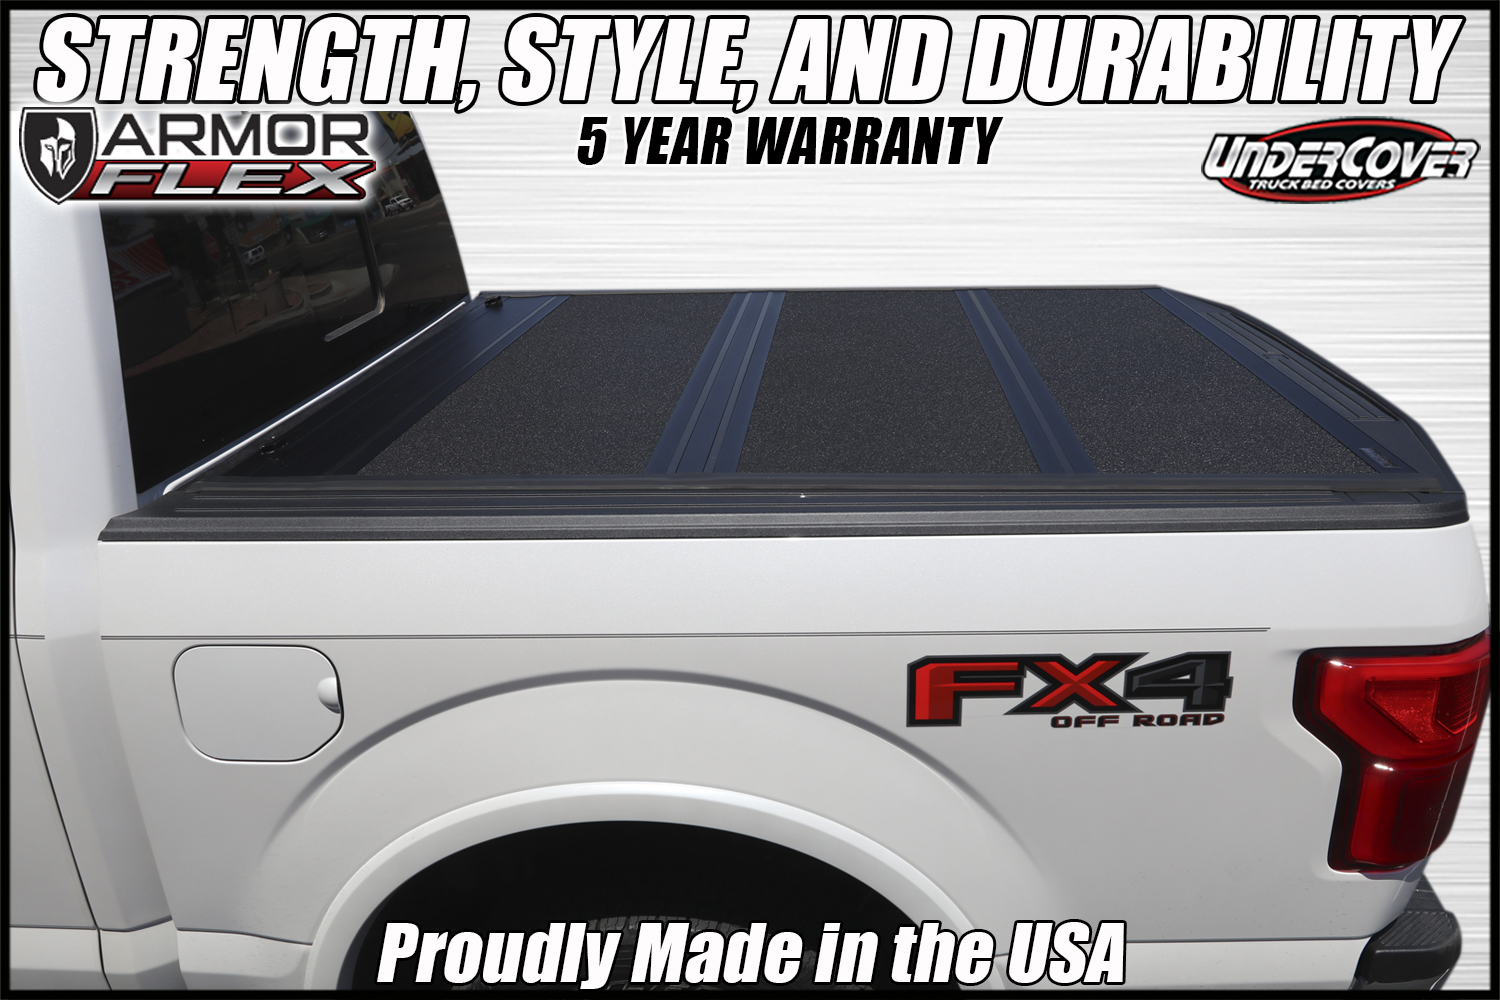 hight resolution of armor flex hard folding truck bed cover by undercover